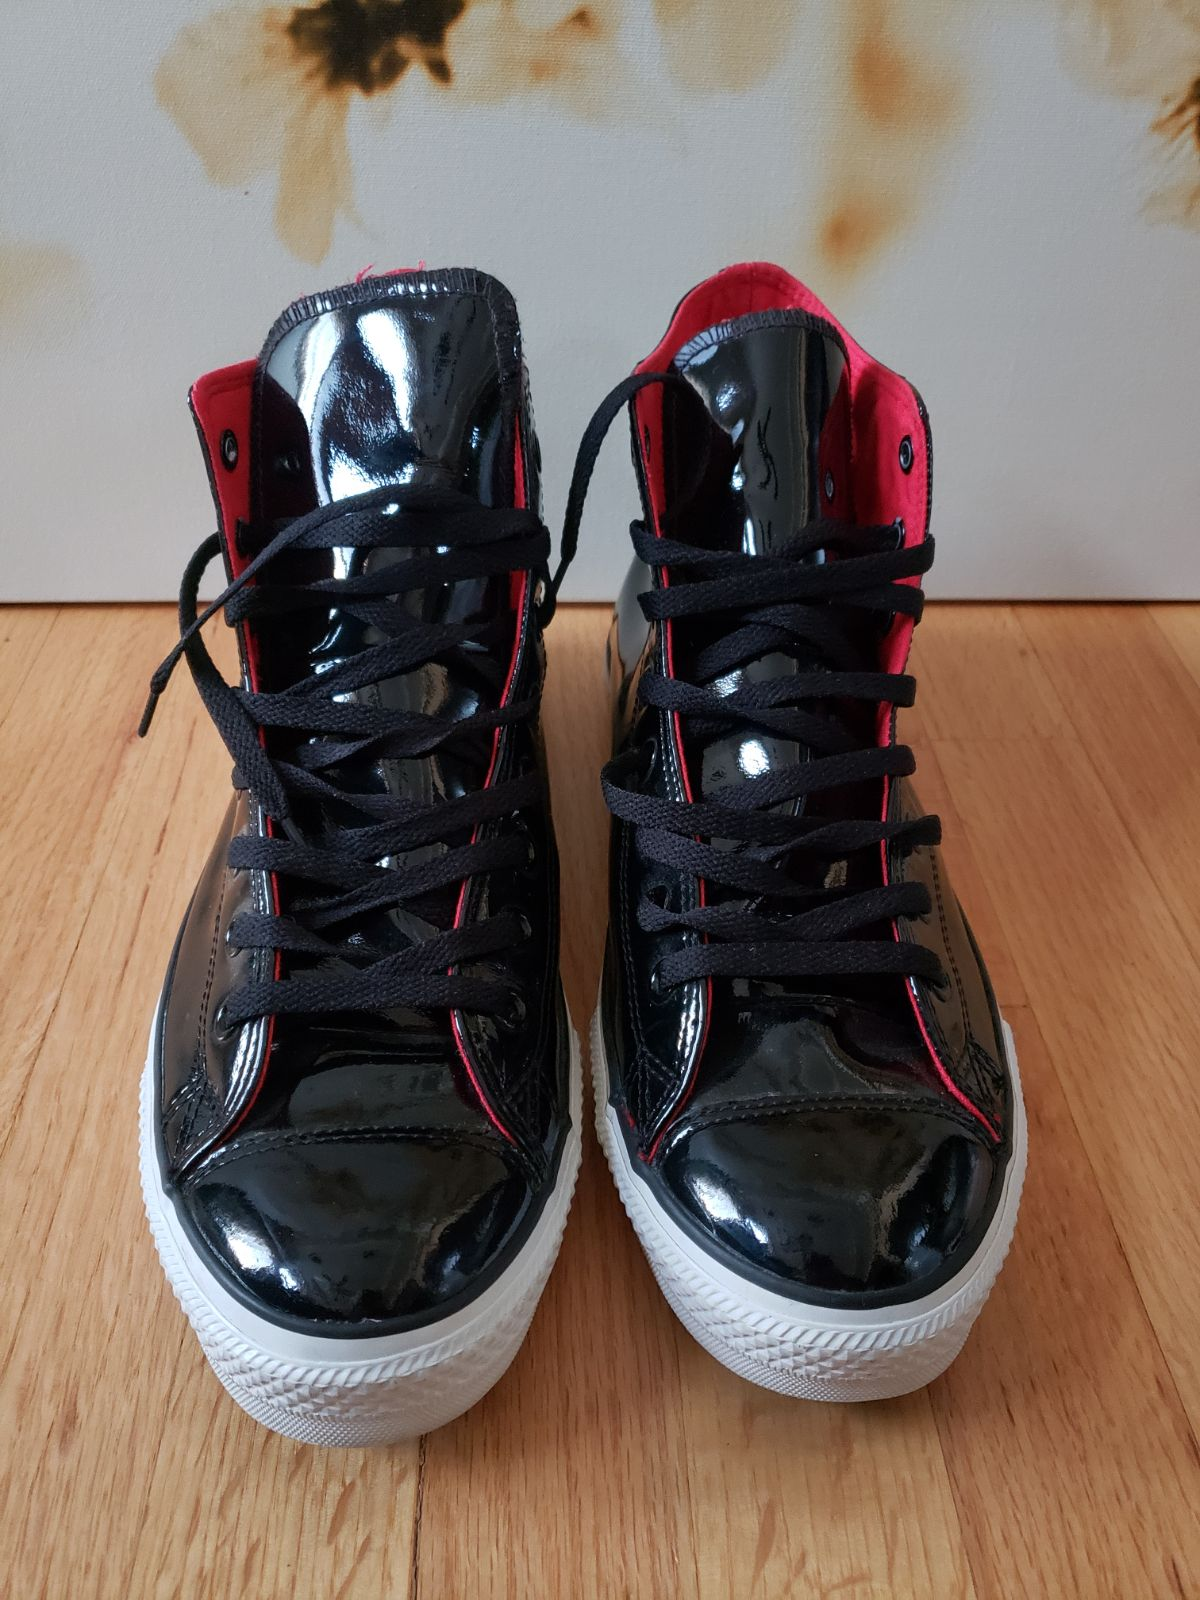 Converse Chuck Taylor Leather Patent, 12